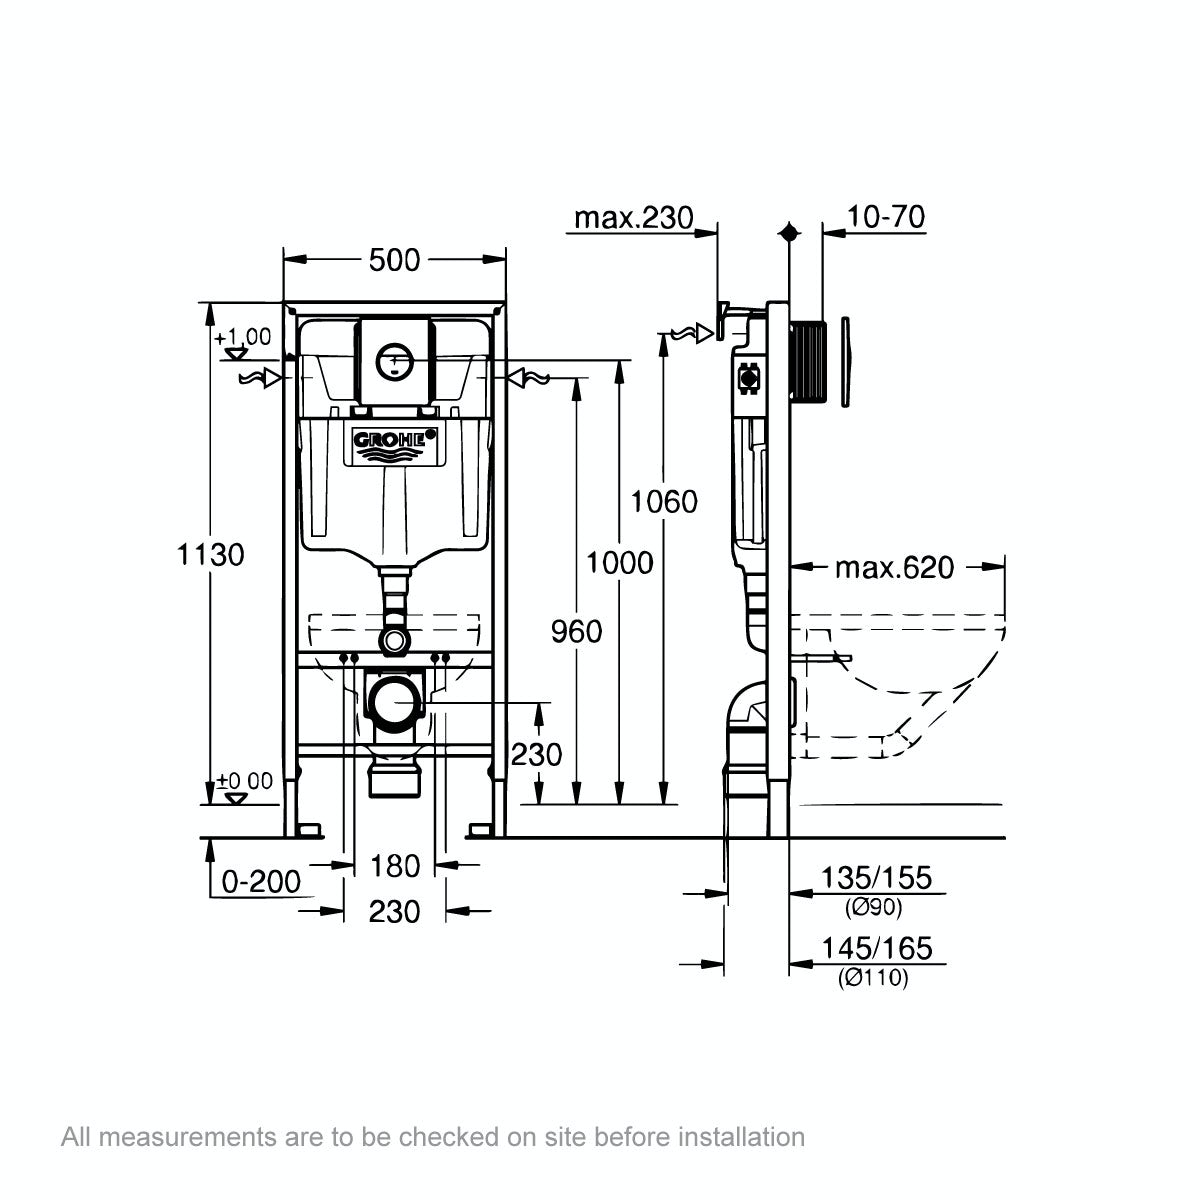 Dimensions for Grohe Rapid SL Set 3 in 1 wall mounting frame with round button Nova Cosmopolitan push plate 1.13m